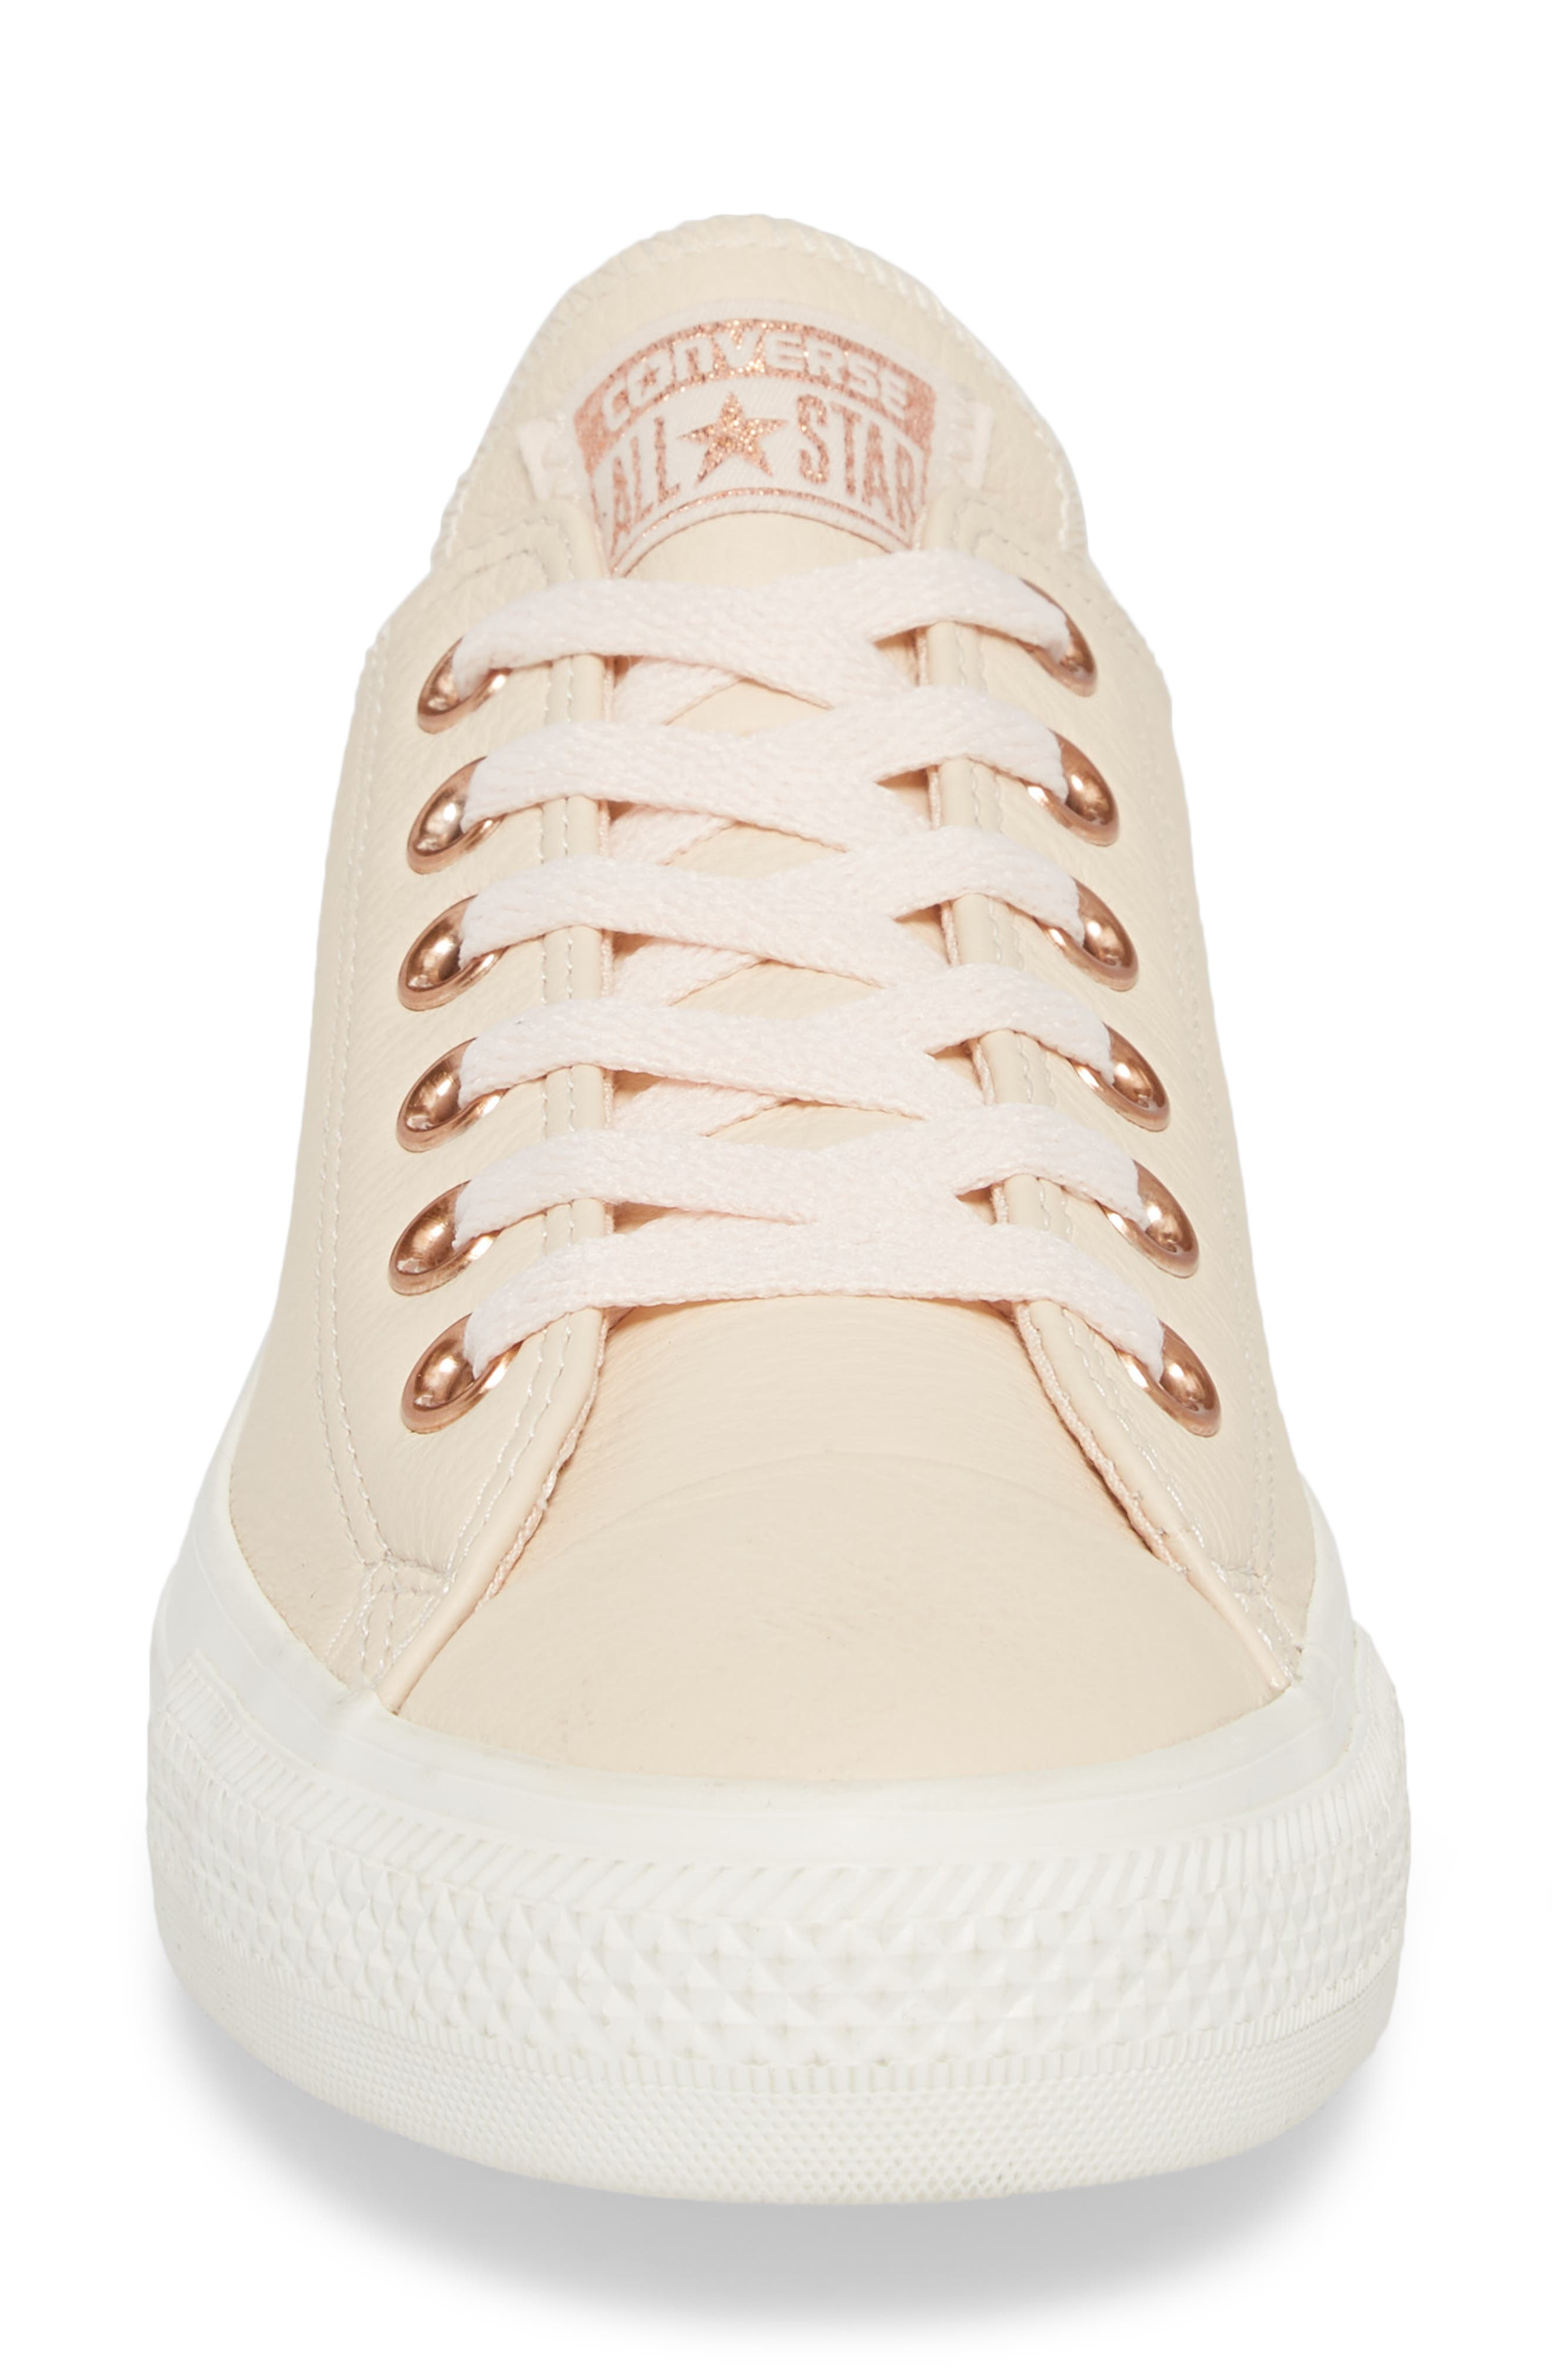 Chuck Taylor<sup>®</sup> All Star<sup>®</sup> Seasonal Ox Low Top Sneaker,                             Alternate thumbnail 4, color,                             Pastel Rose Leather